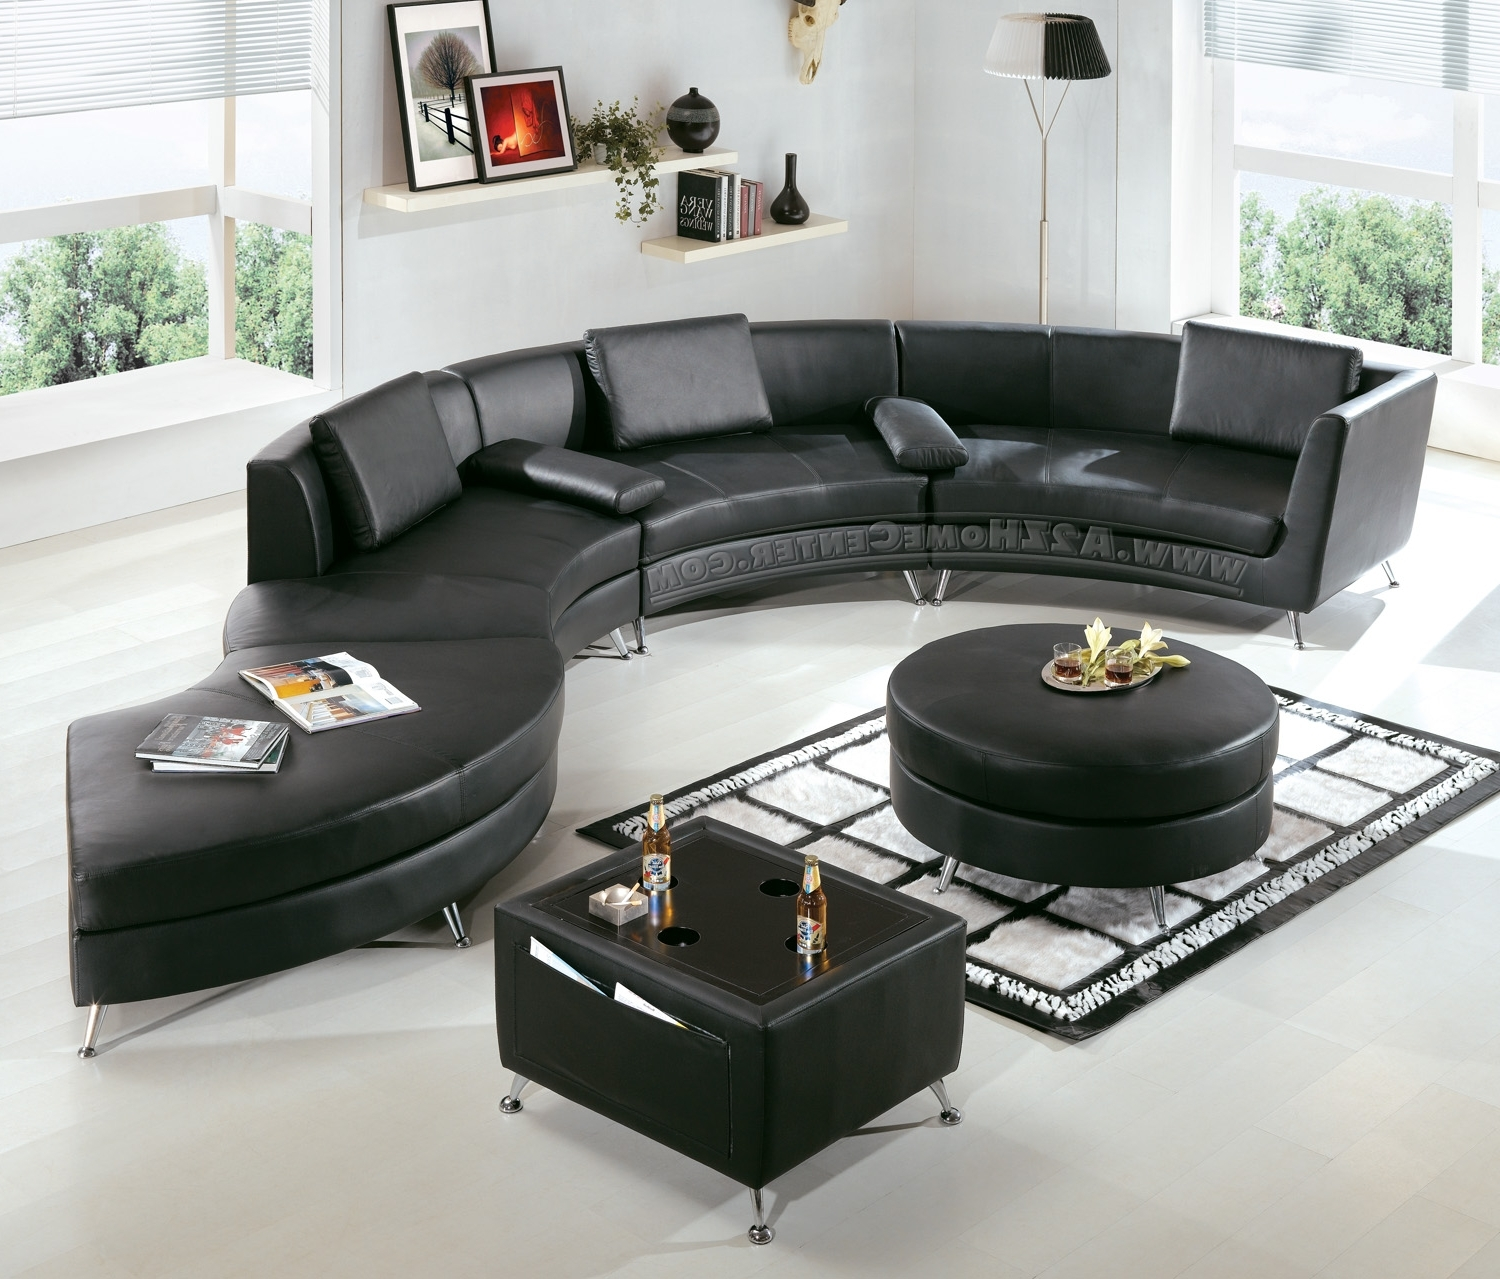 Widely Used Kitchener Sectional Sofas With Regard To Coffee Table : Sofa Set Toronto Best Sectionals Toronto Buy Sofa (View 20 of 20)